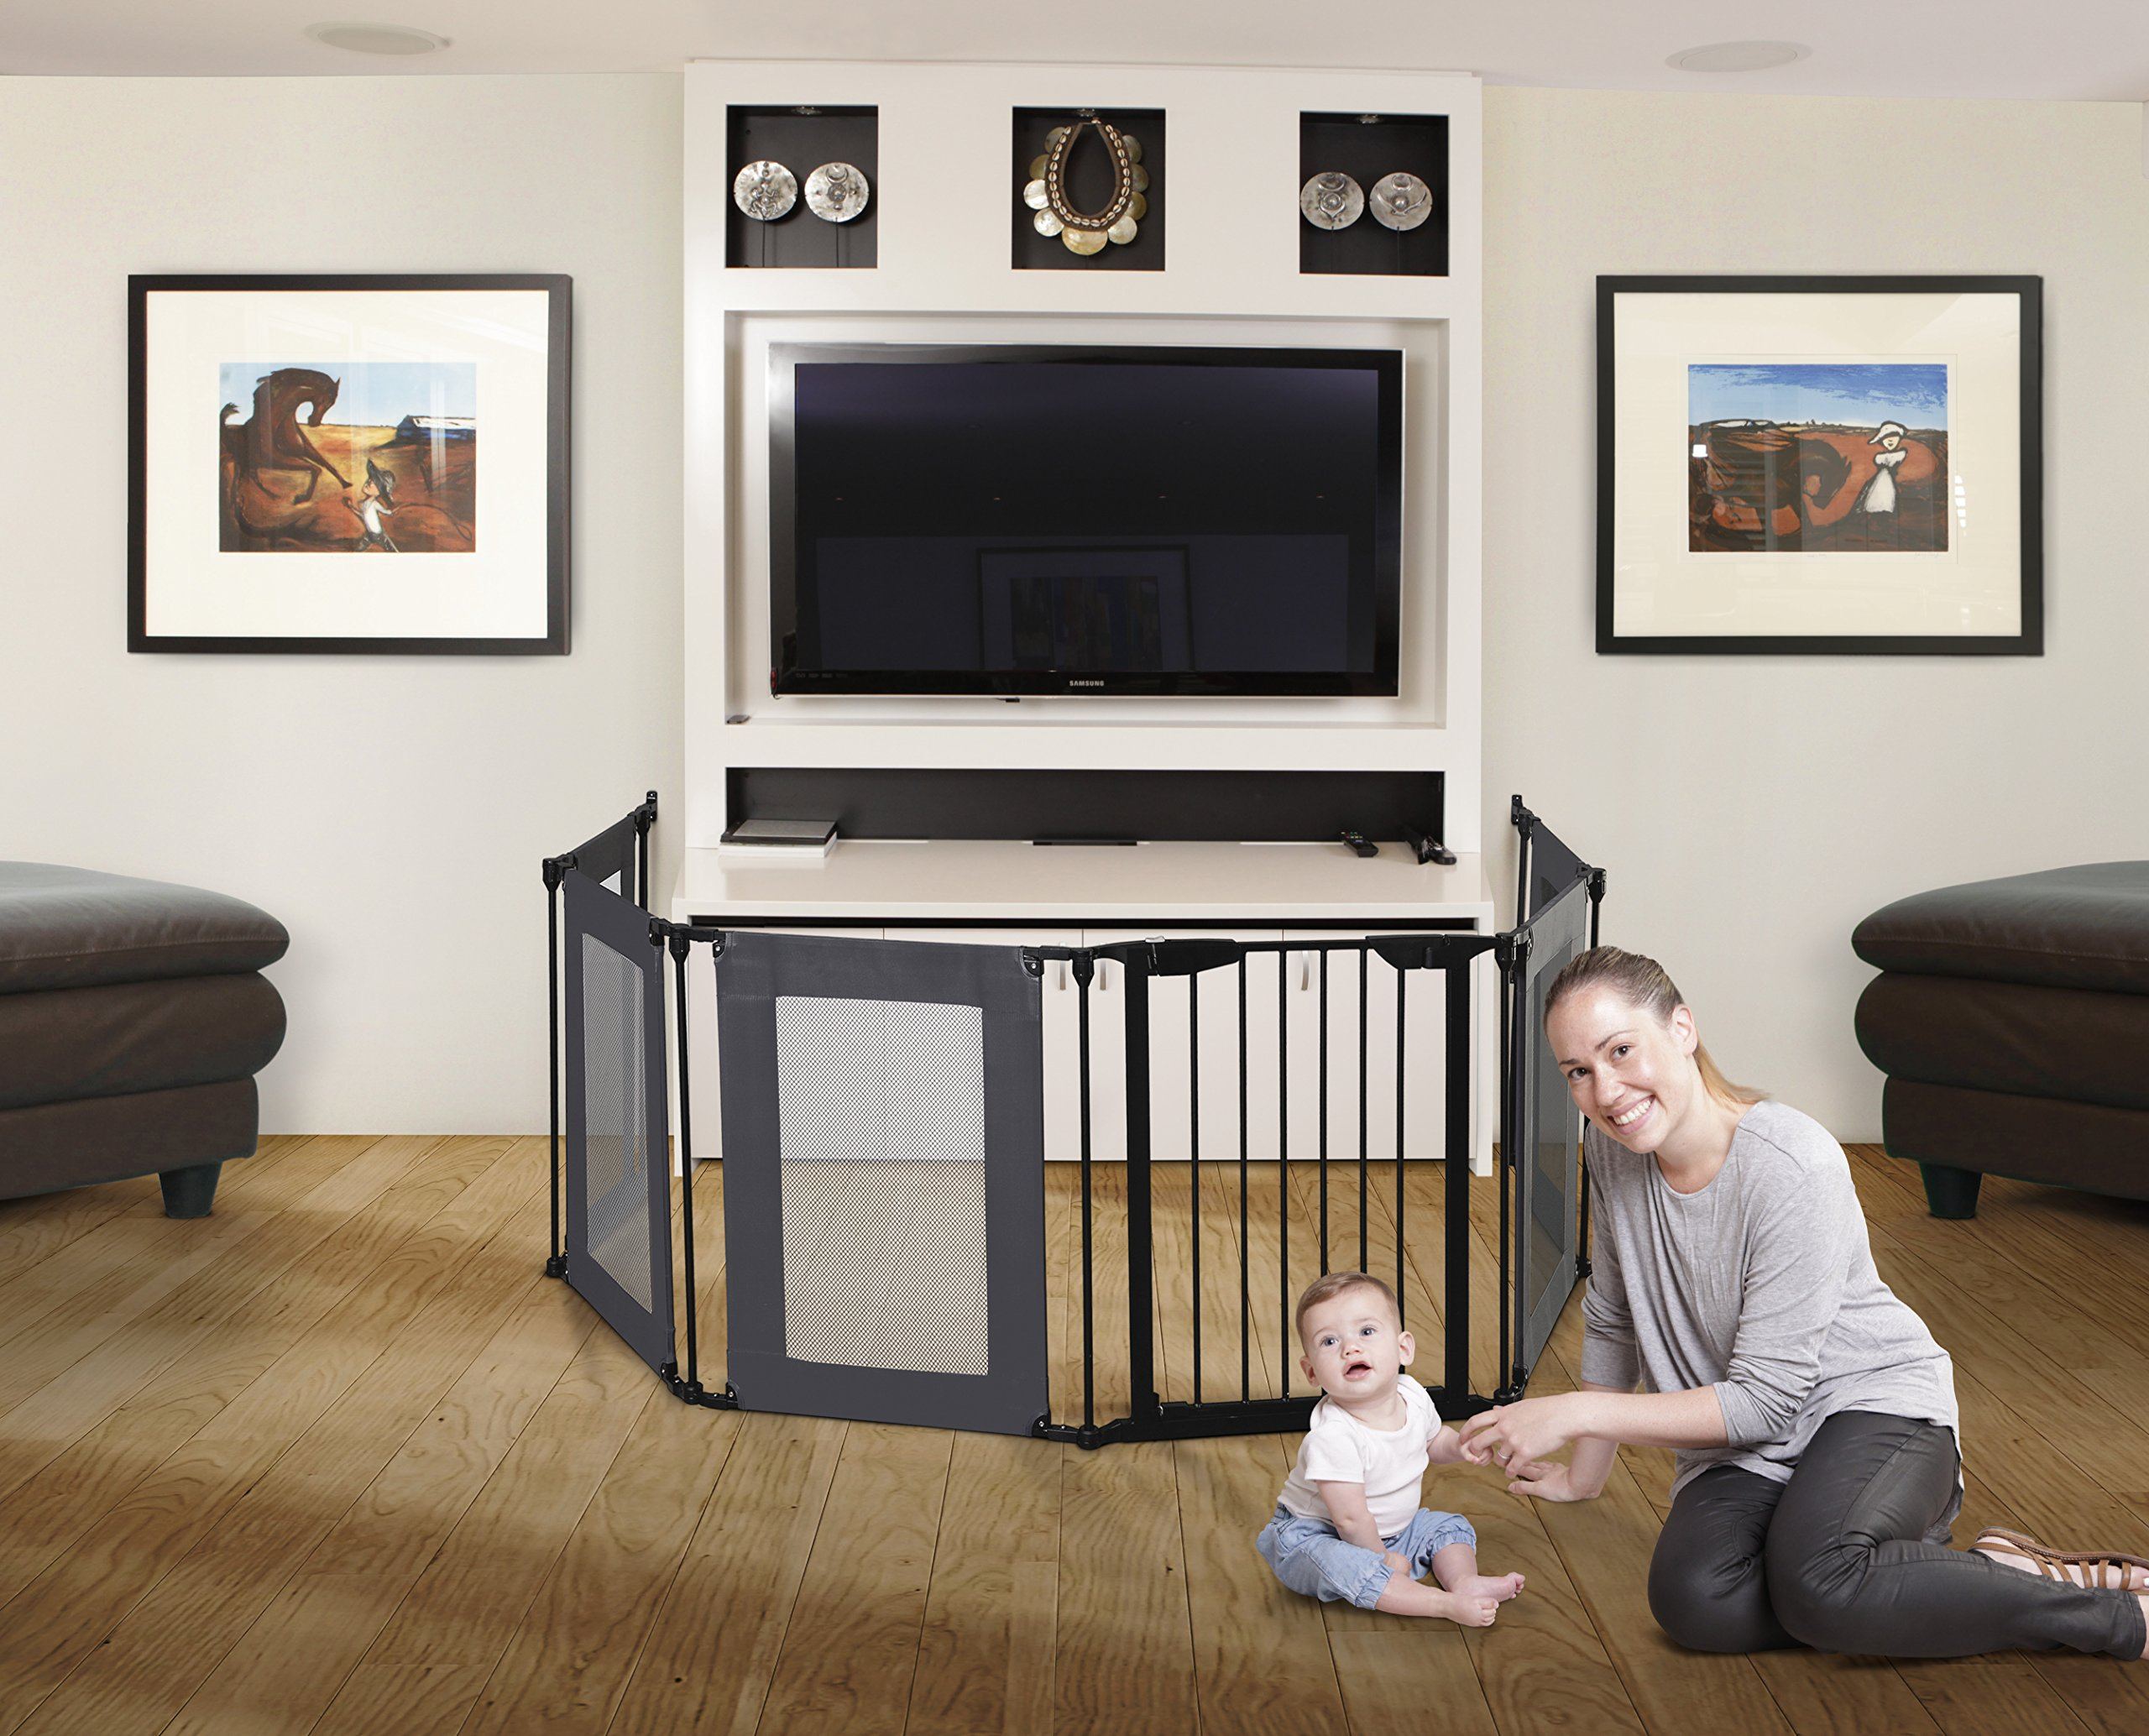 Dreambaby Brooklyn 3-in-1 Converta Dreambaby 6 modular panels including covenient walk-through gate Arrange panels to your specific layout Can be used as either a play-pen or extra-wide barrier gate 4